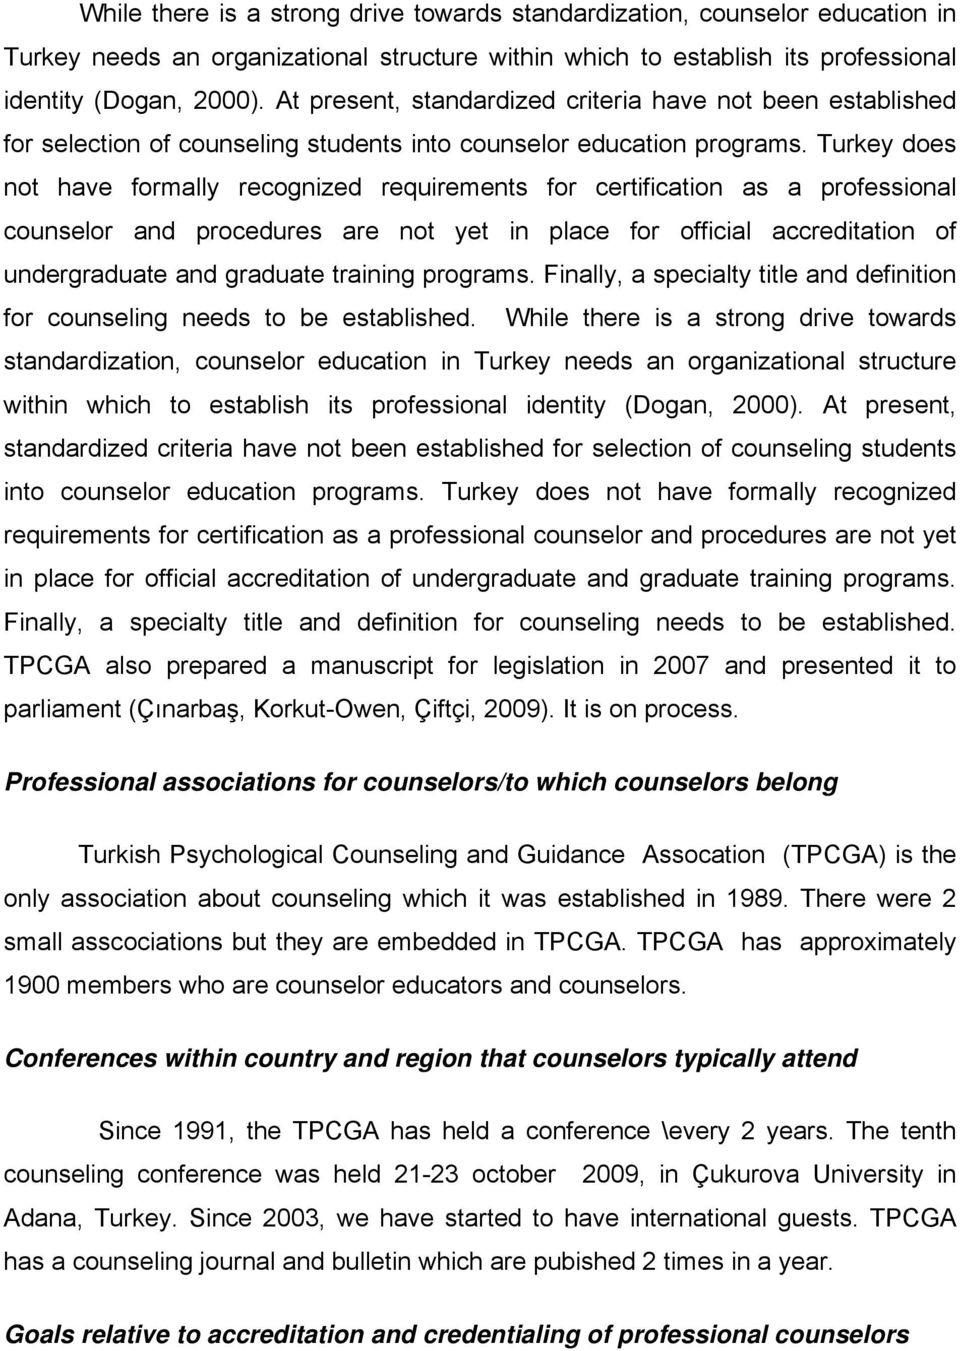 Turkey does not have formally recognized requirements for certification as a professional counselor and procedures are not yet in place for official accreditation of undergraduate and graduate